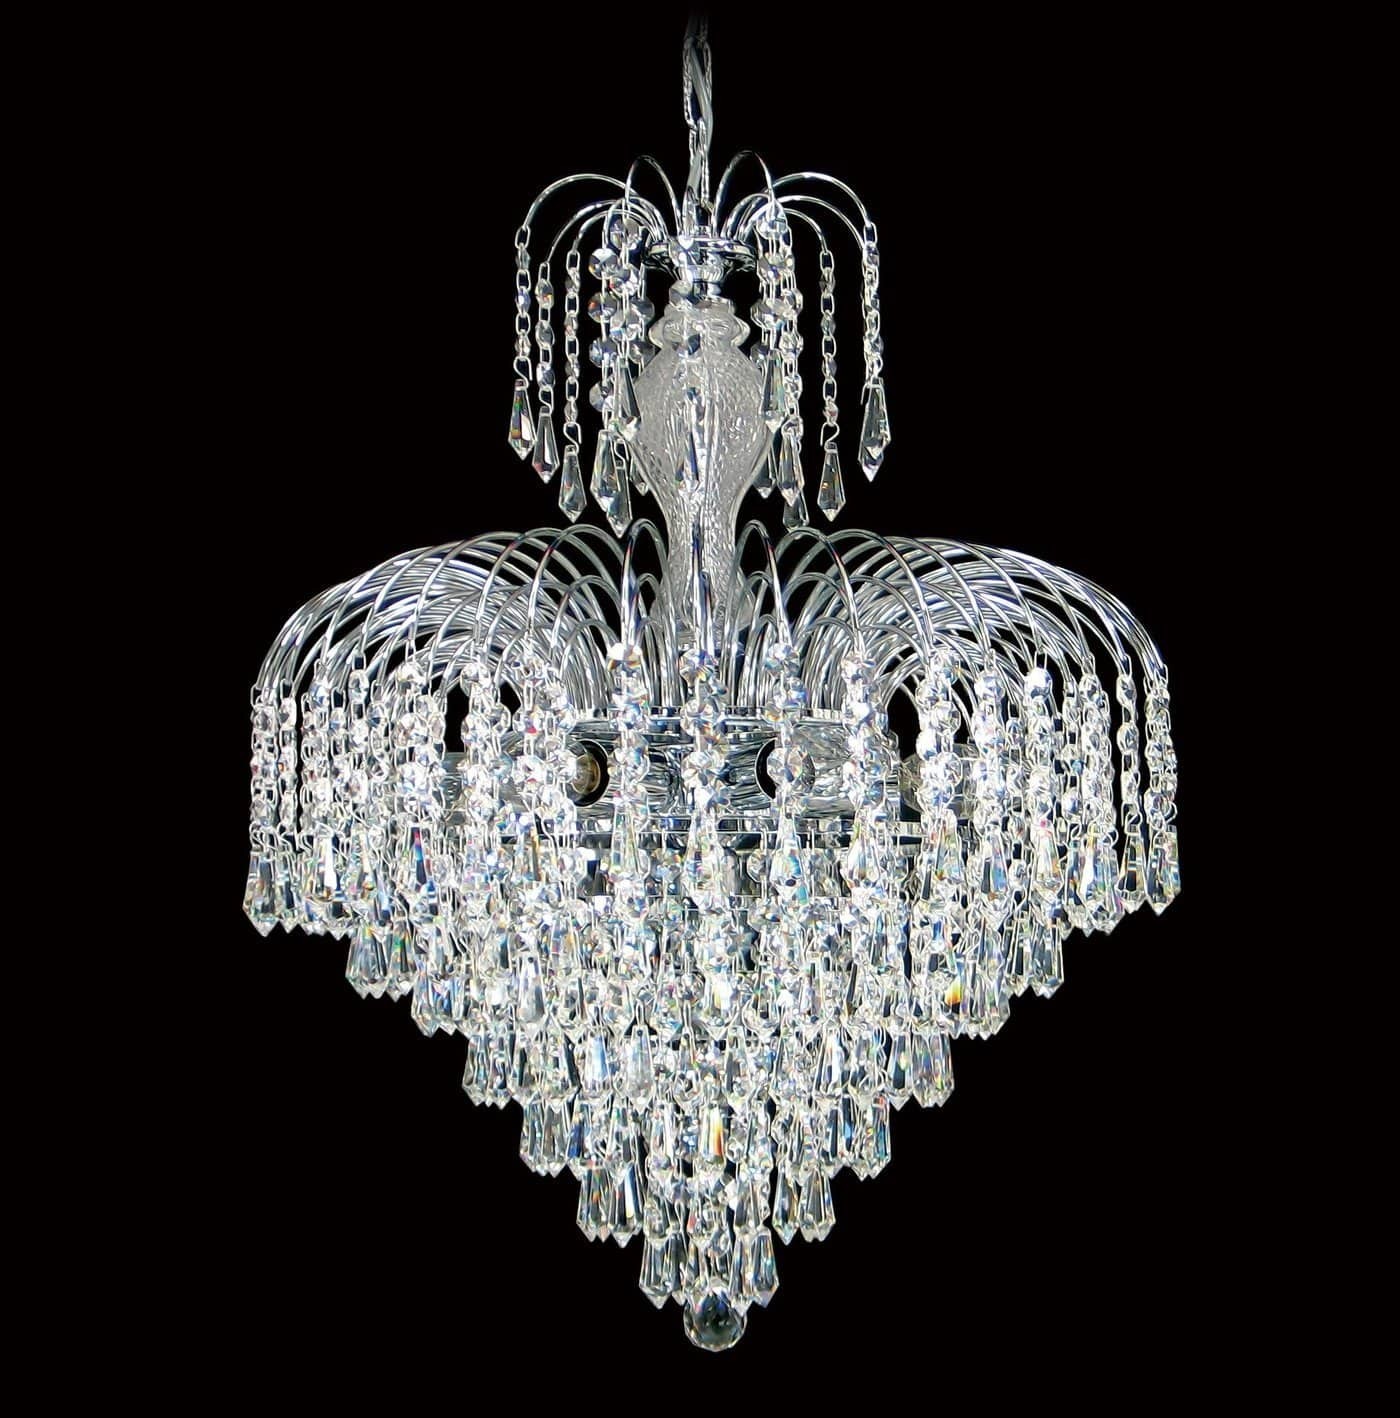 Asfour crystal light by chic chandeliers 7 light 17 asfour lead crystal chrome waterfall chandelier aloadofball Gallery